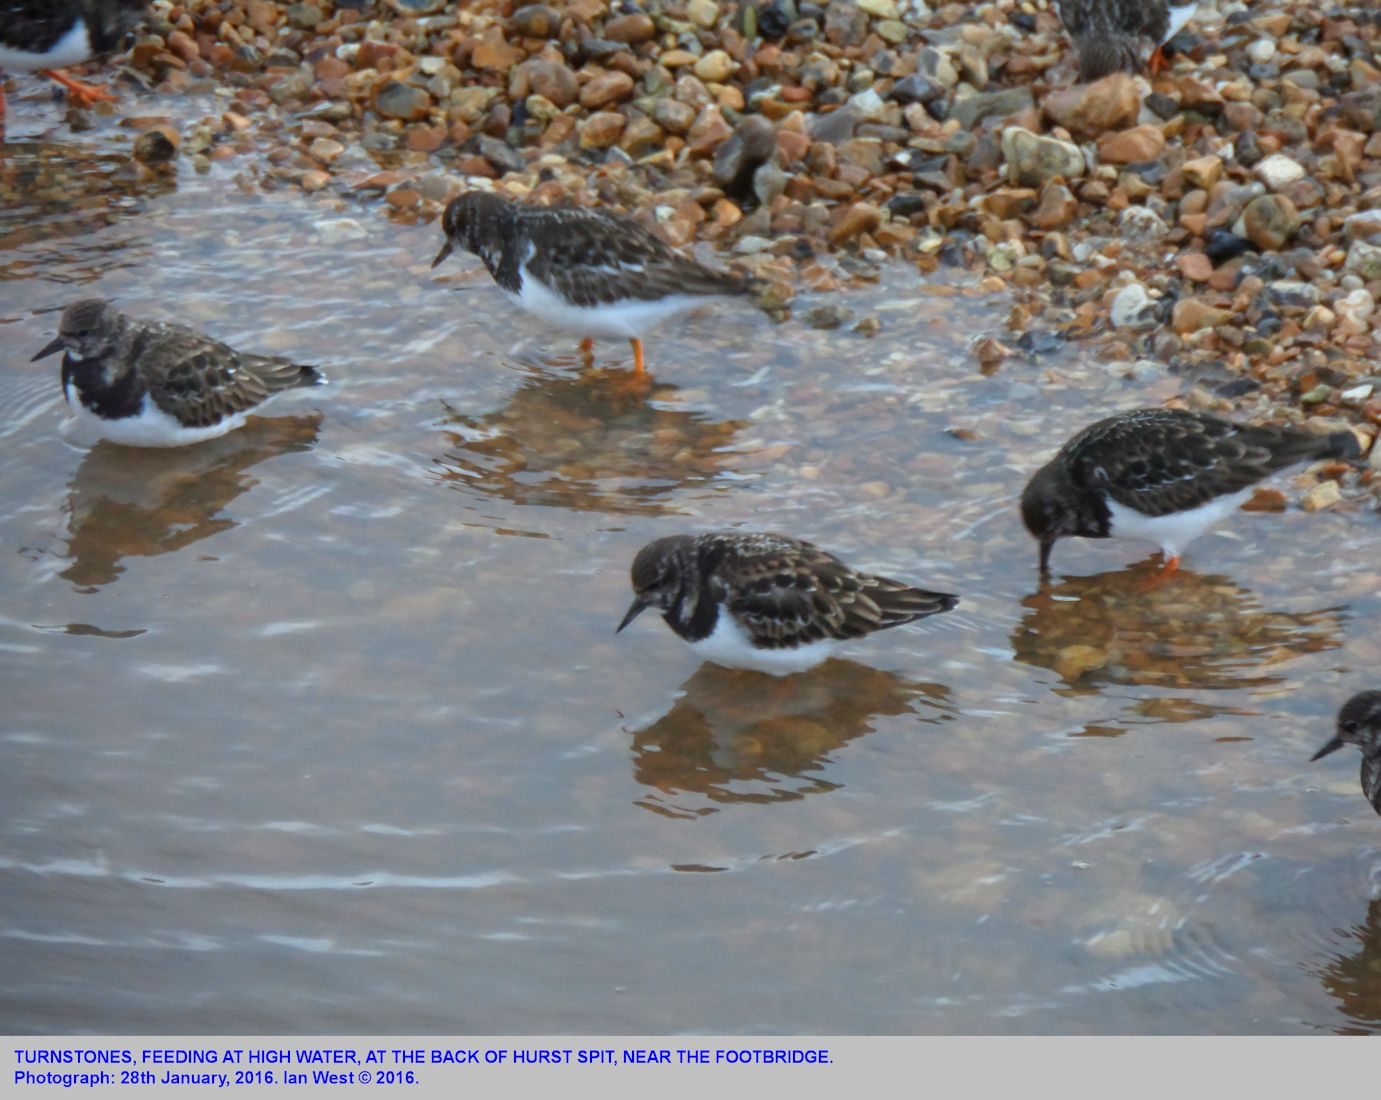 Turnstones feeding in amongst the pebbles at the high water edge, Hurst Spit, harbour side, landward end, adjacent to the footbridge, photographed from the bridge, 28th January 2016